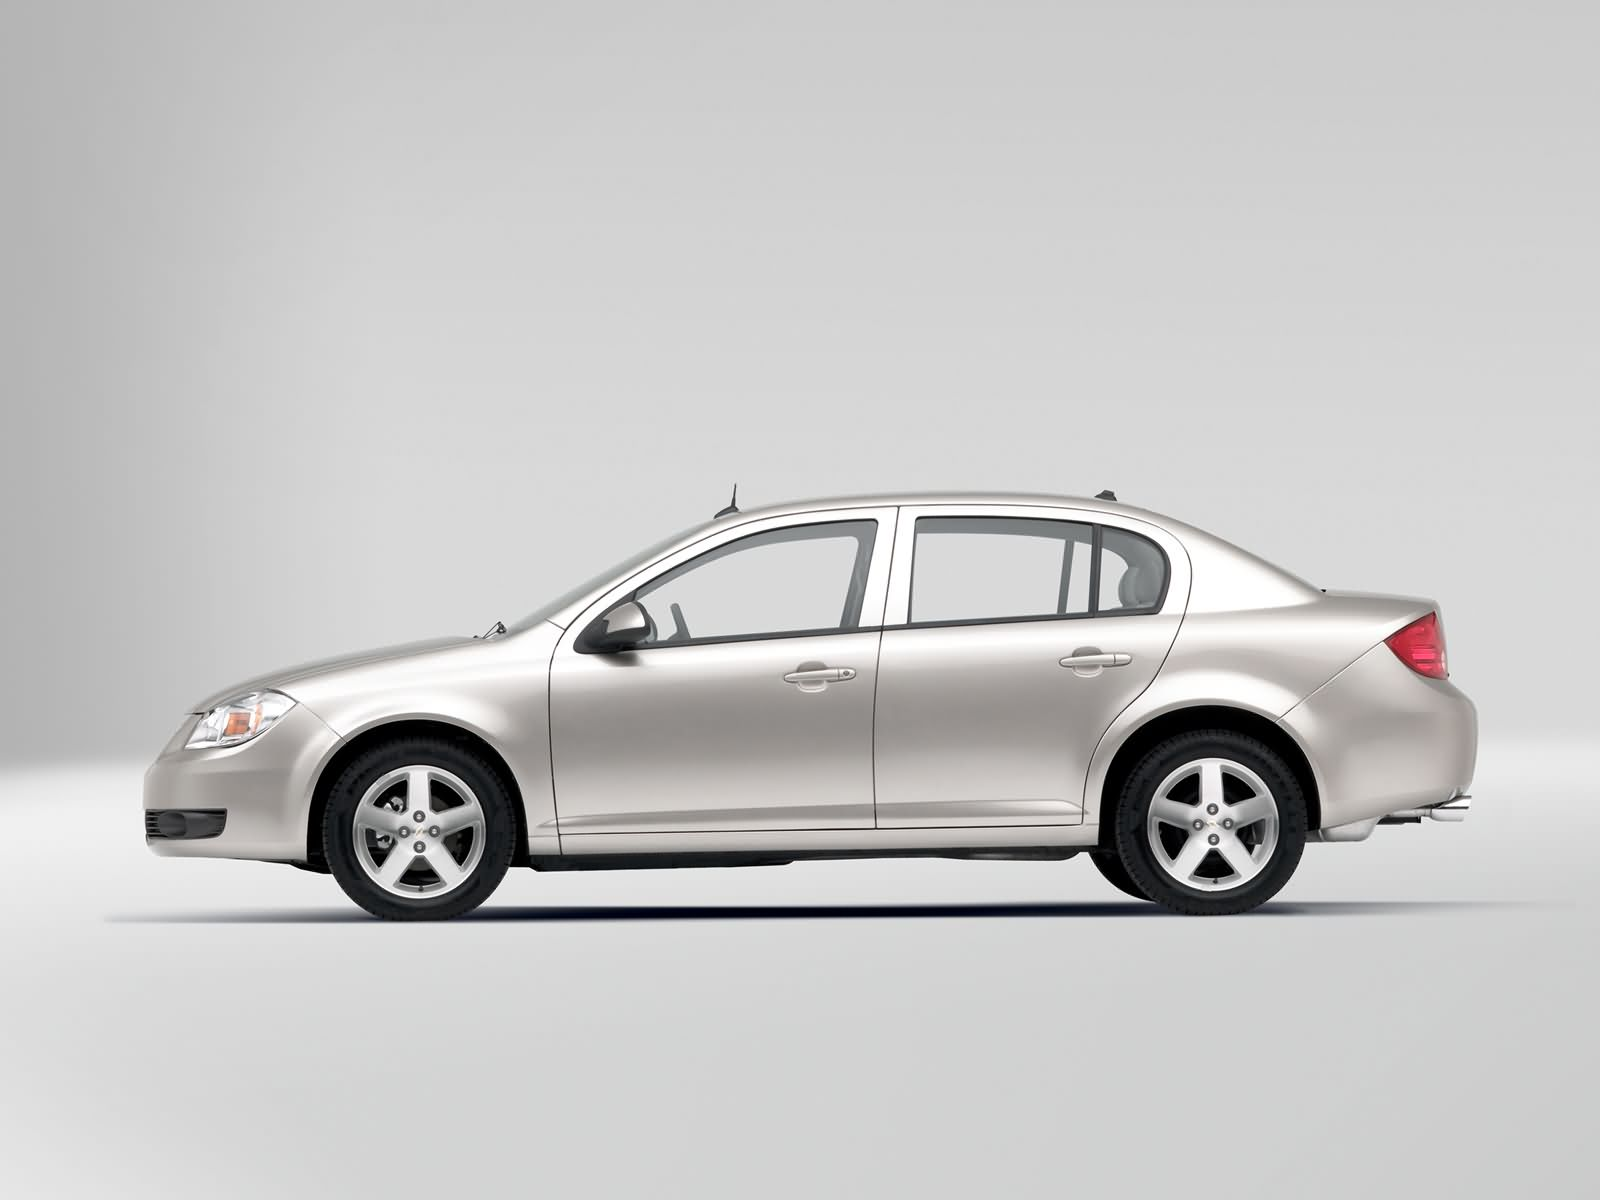 Chevrolet Cobalt photo 7651